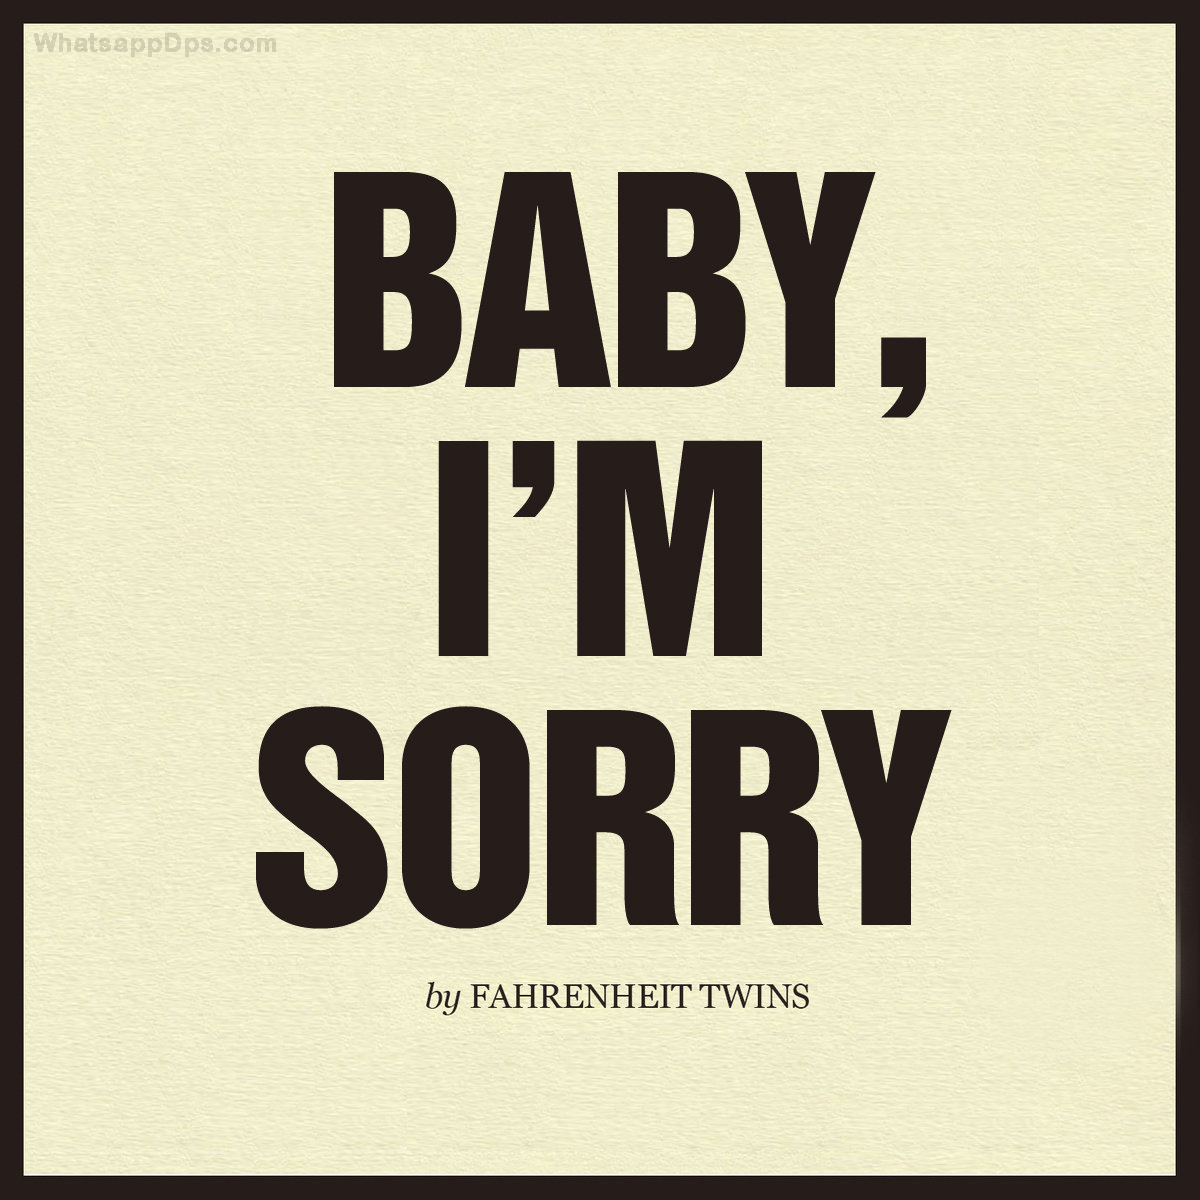 Download I Am Sorry Whatsapp Profile Picture And Update On Whatsapp To Impress Your Friends Share With Friends Or A Im Sorry Quotes Sorry Quotes Sorry My Love